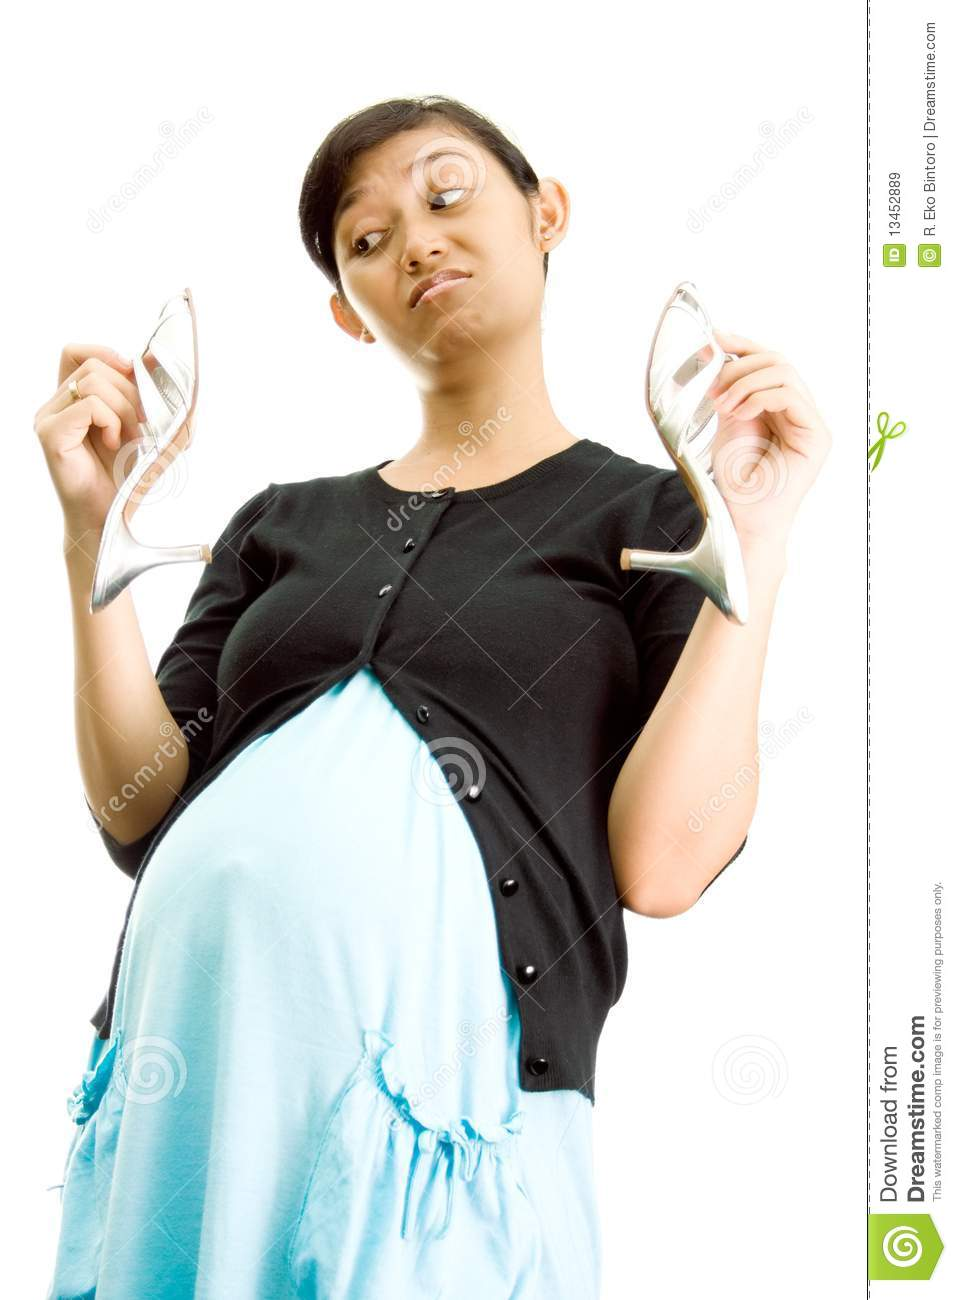 Pregnant Woman And High Heel Shoes Stock Image